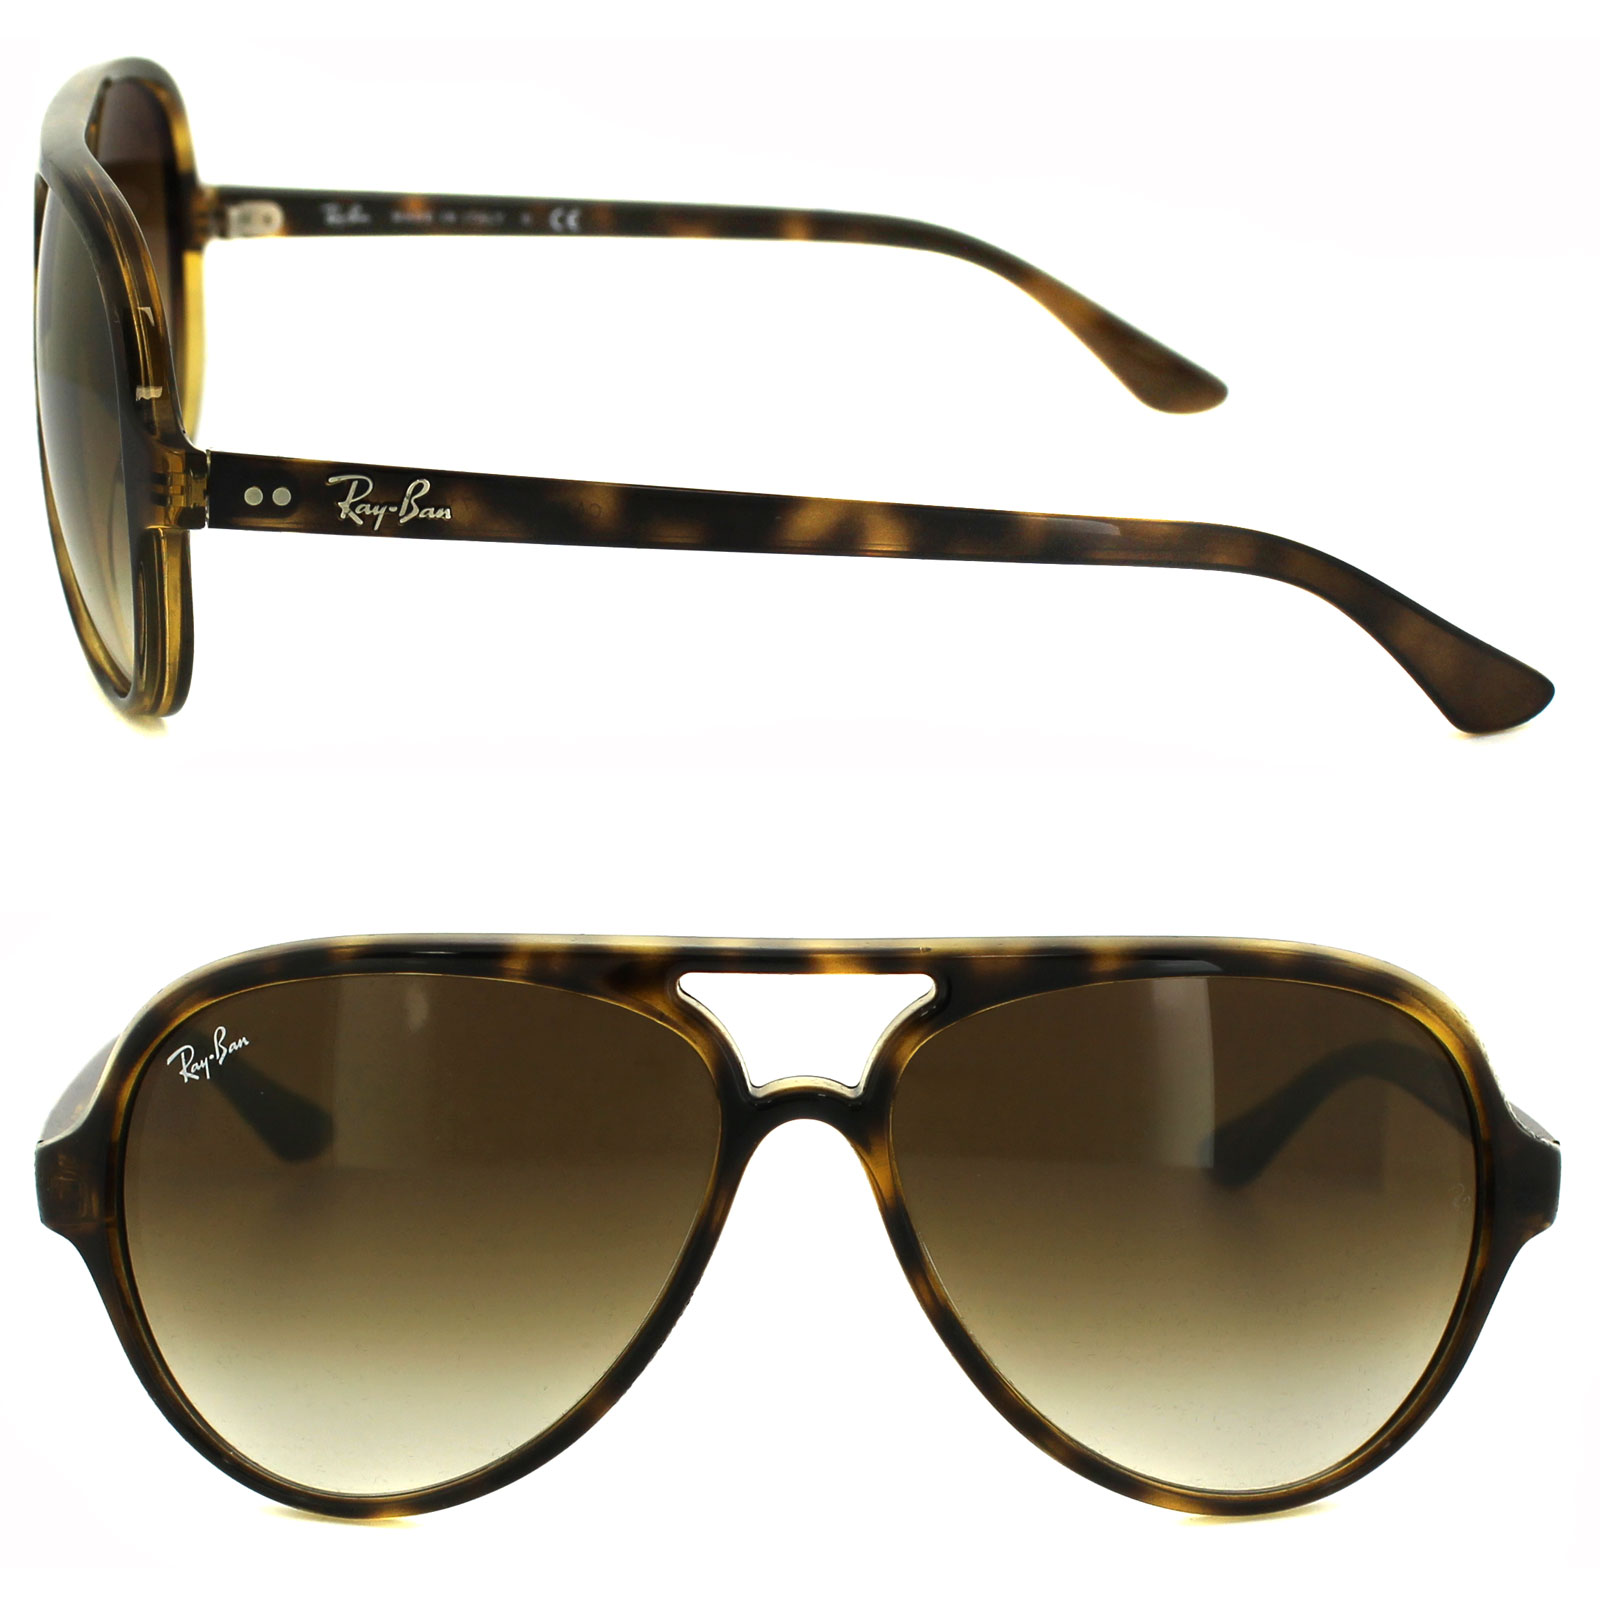 ray ban sunglasses cats 5000 4125 710 51 havana brown ebay. Black Bedroom Furniture Sets. Home Design Ideas